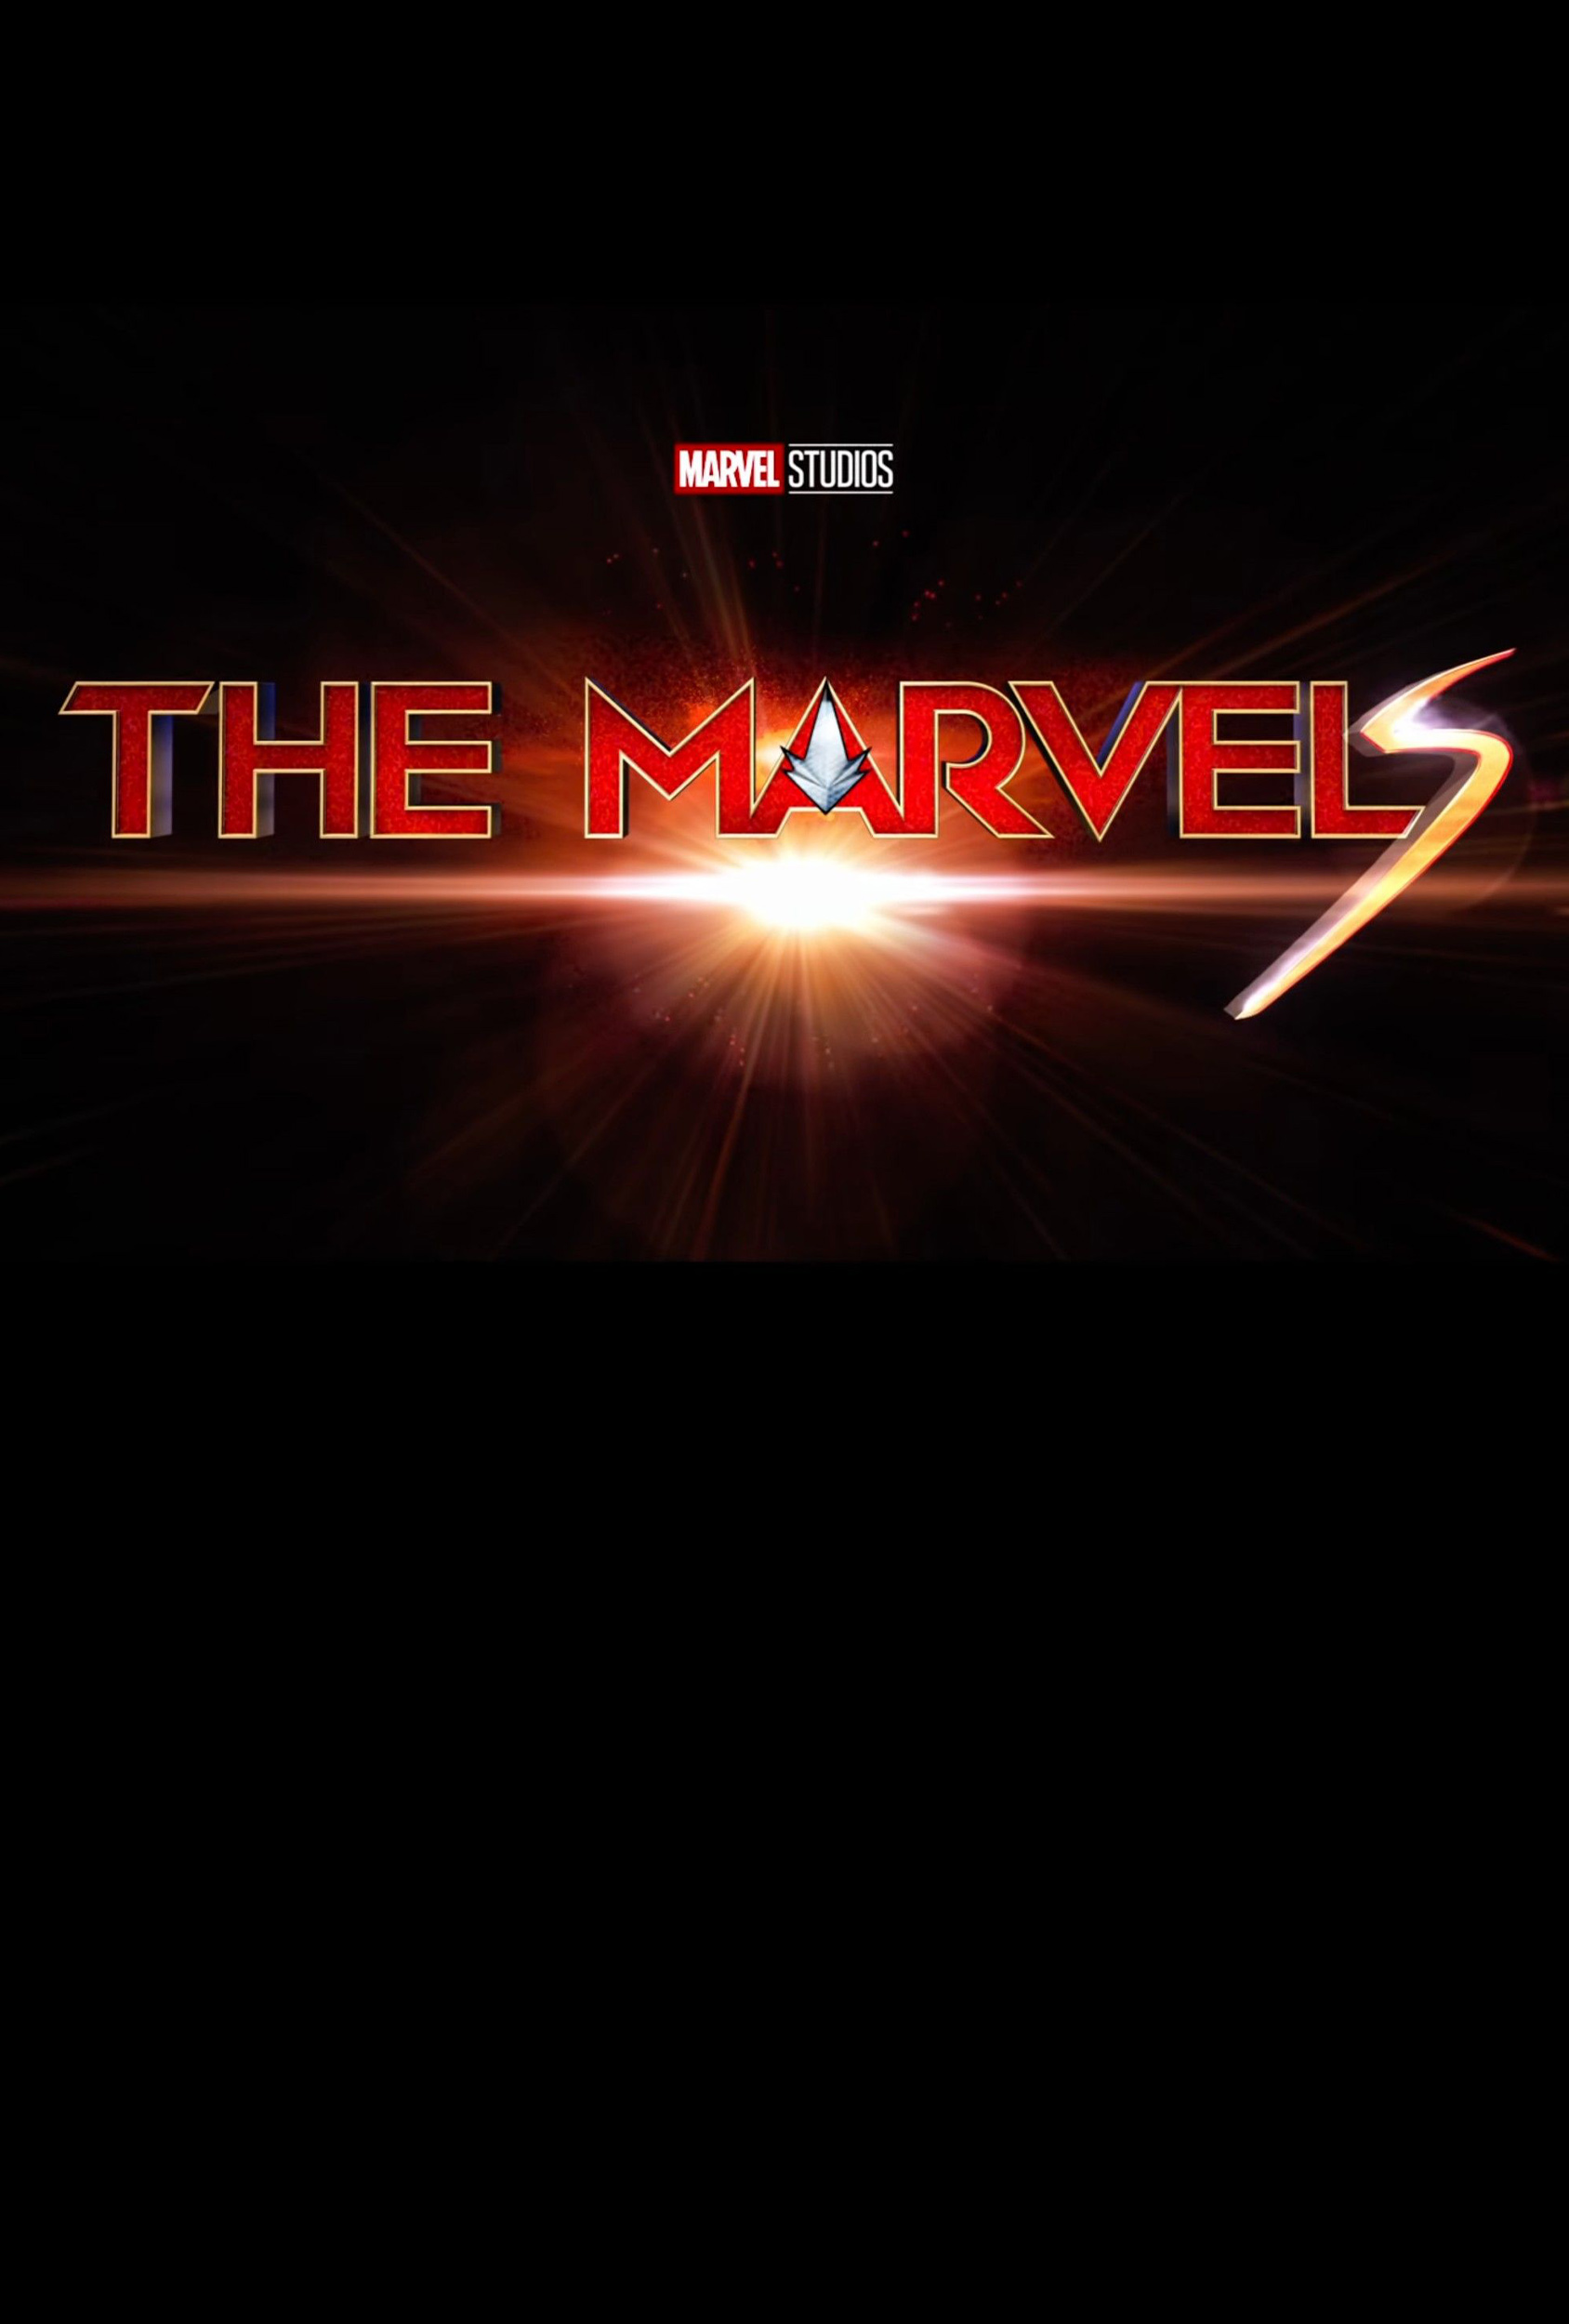 Affiche Captain Marvel 2 : The Marvels